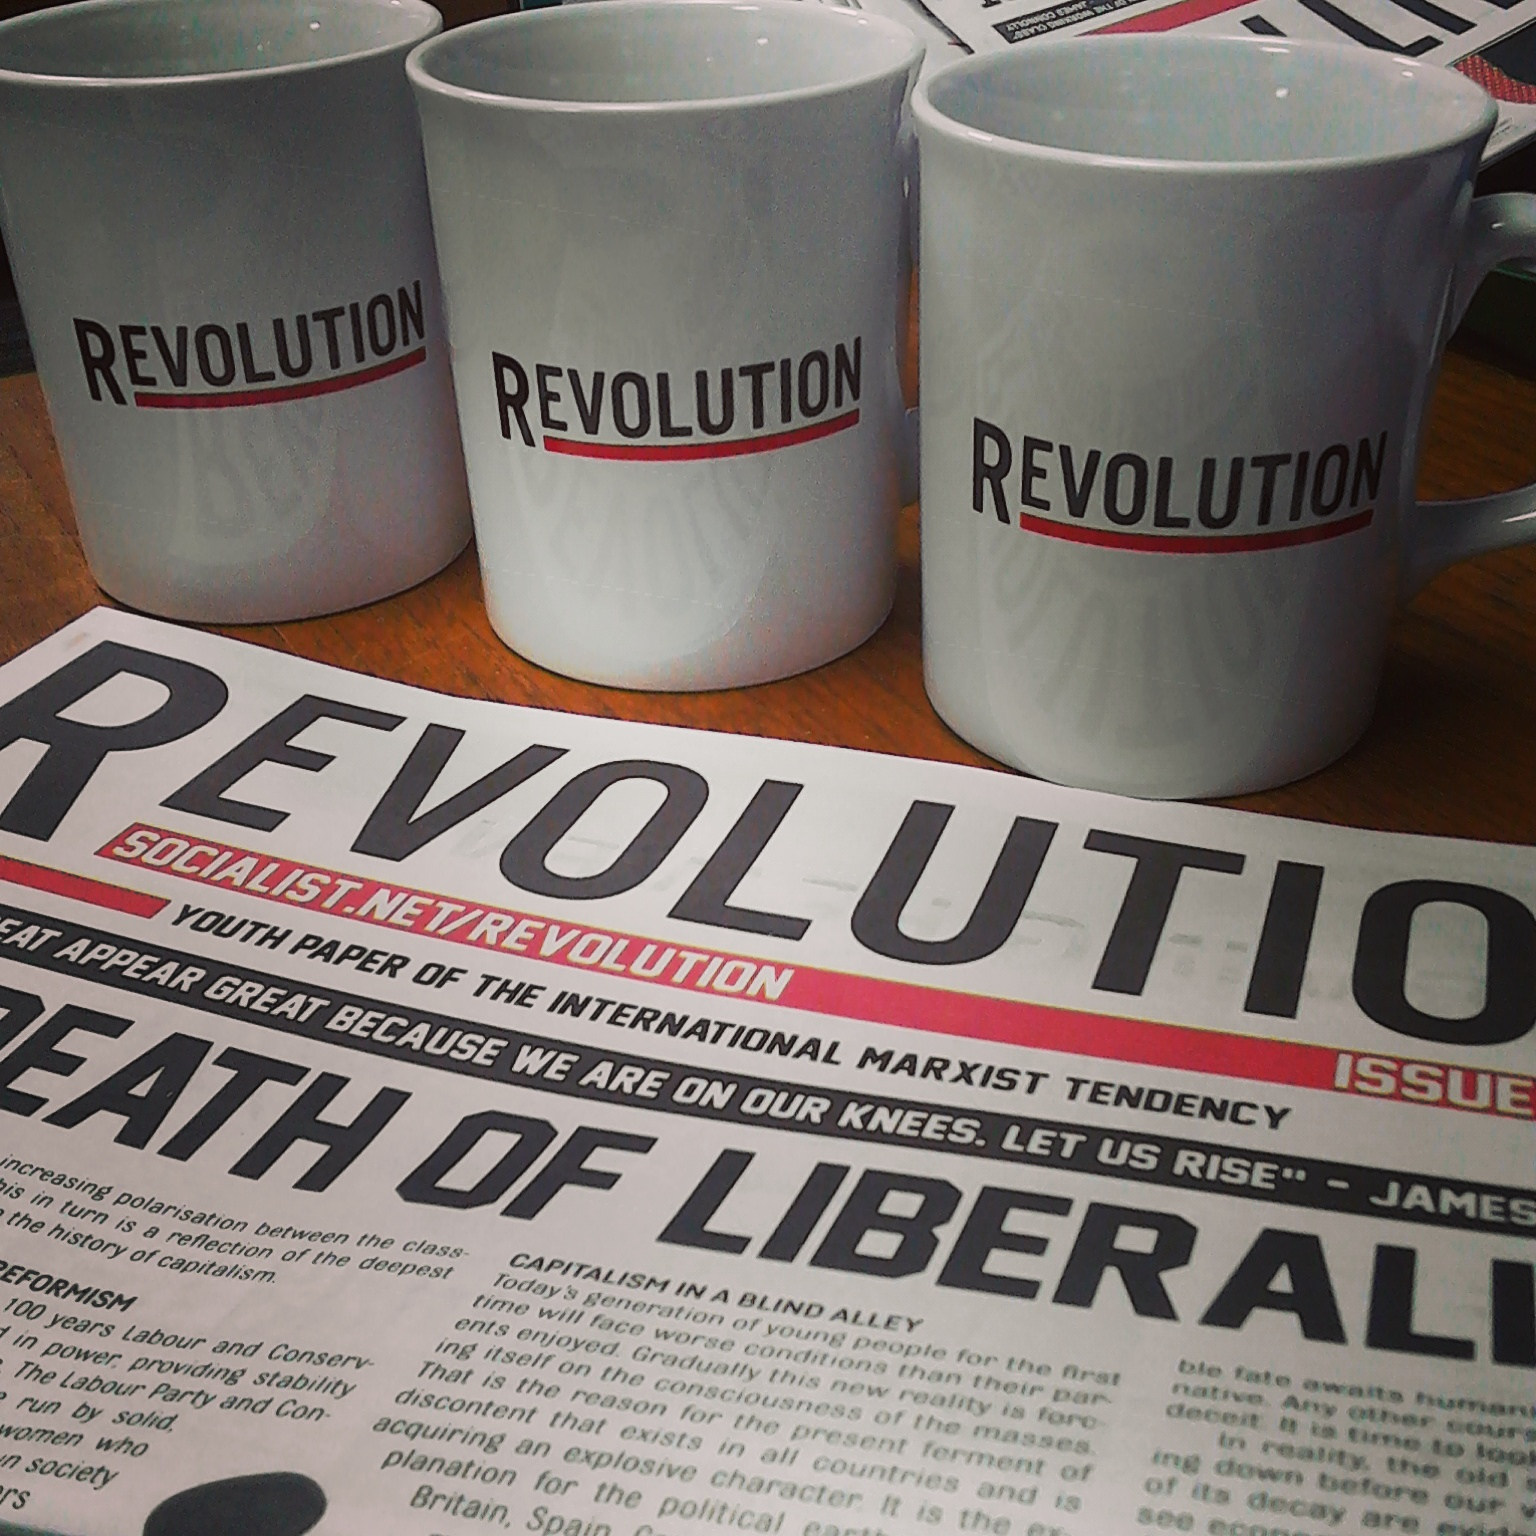 Revolutionary mugs now on sale!